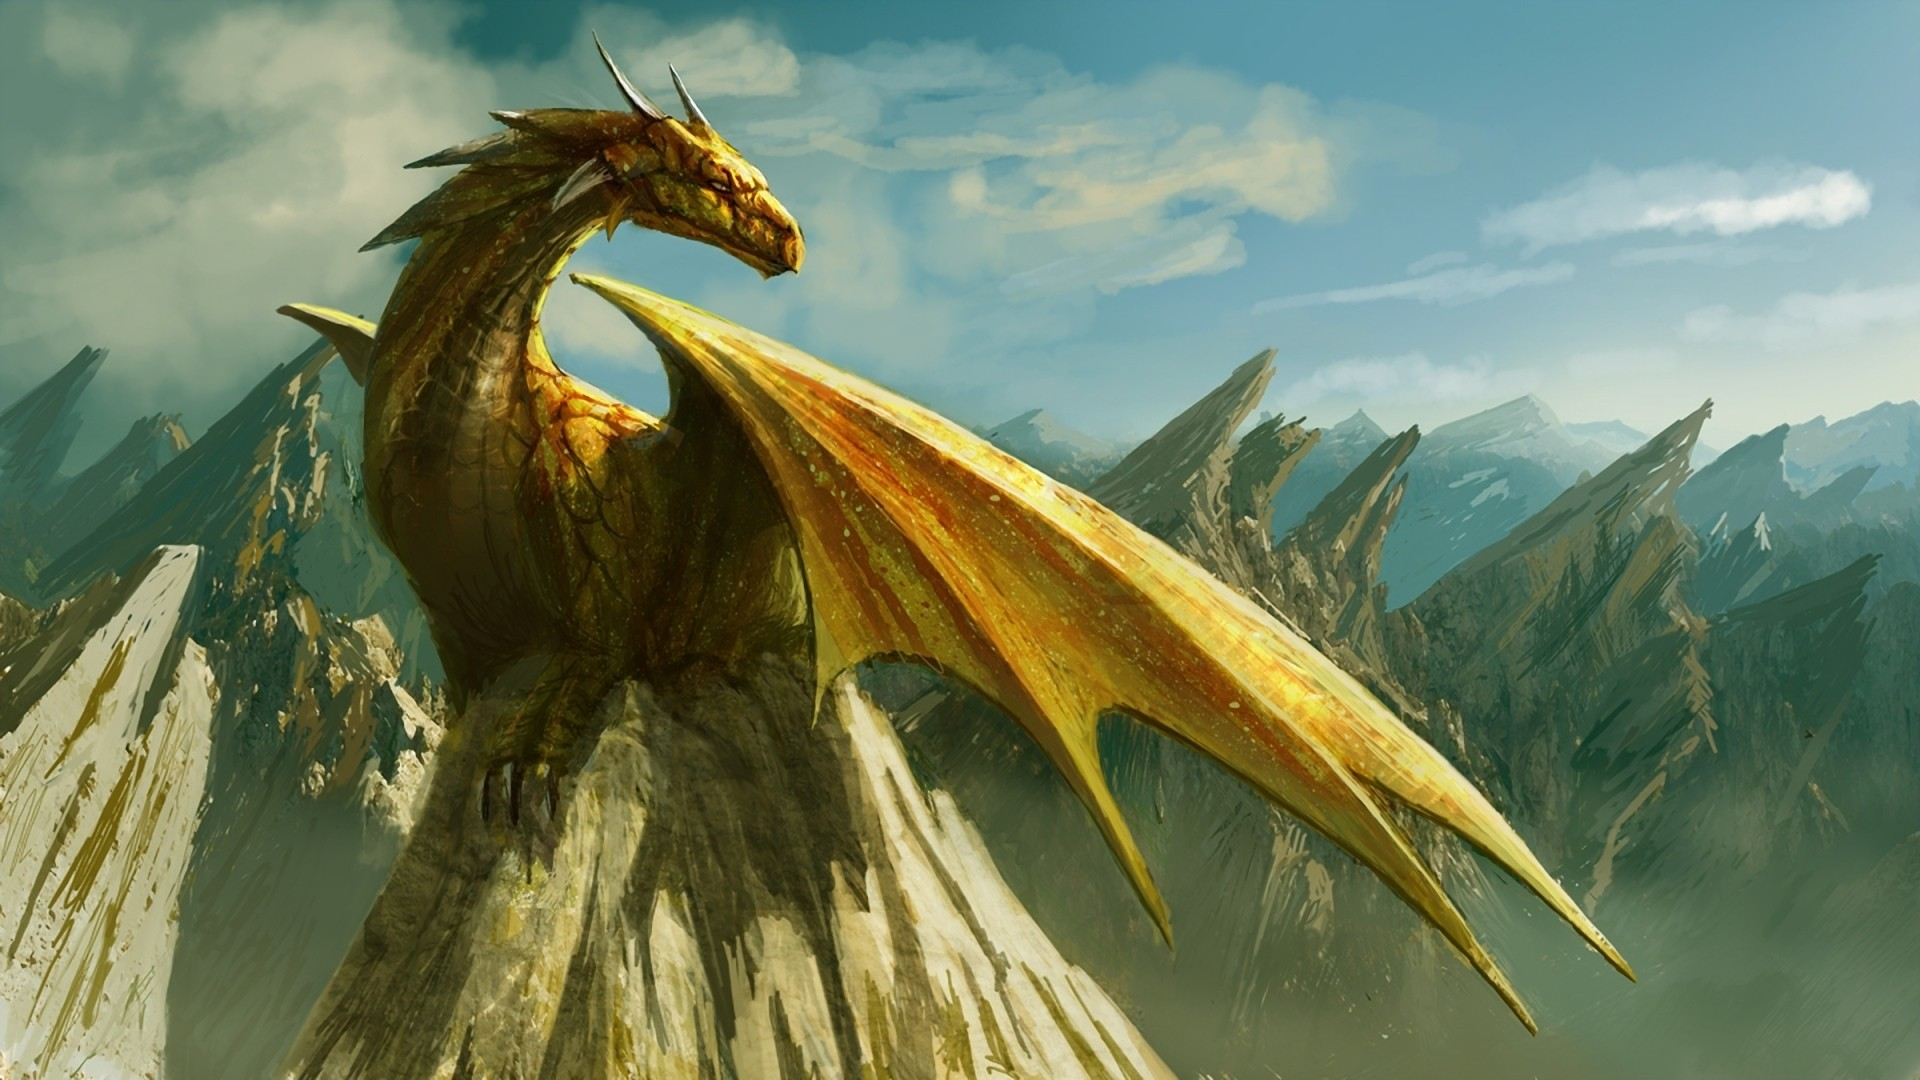 Fantasy Dragon Wallpaper Full HD Image